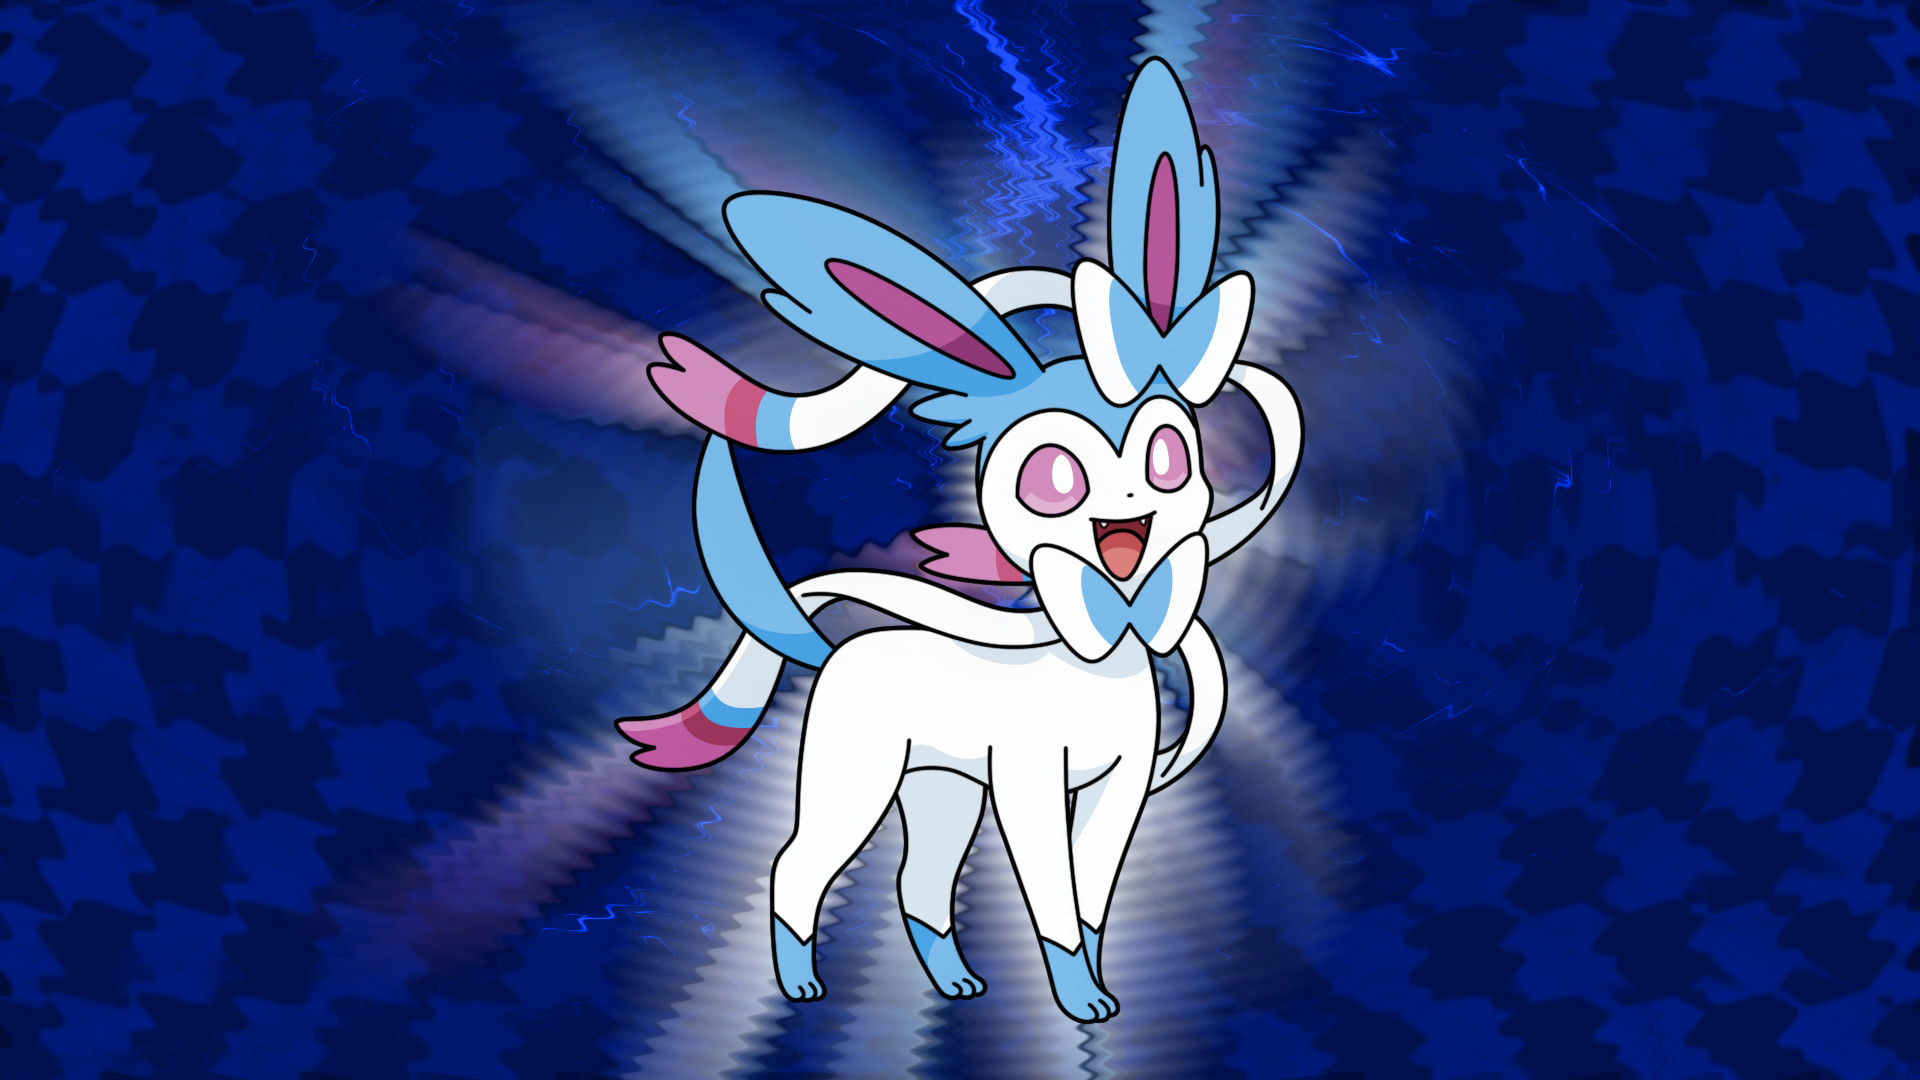 1920x1080 Shiny Sylveon Psychic Wallpaper by SlySylveon Shiny Sylveon Psychic  Wallpaper by SlySylveon